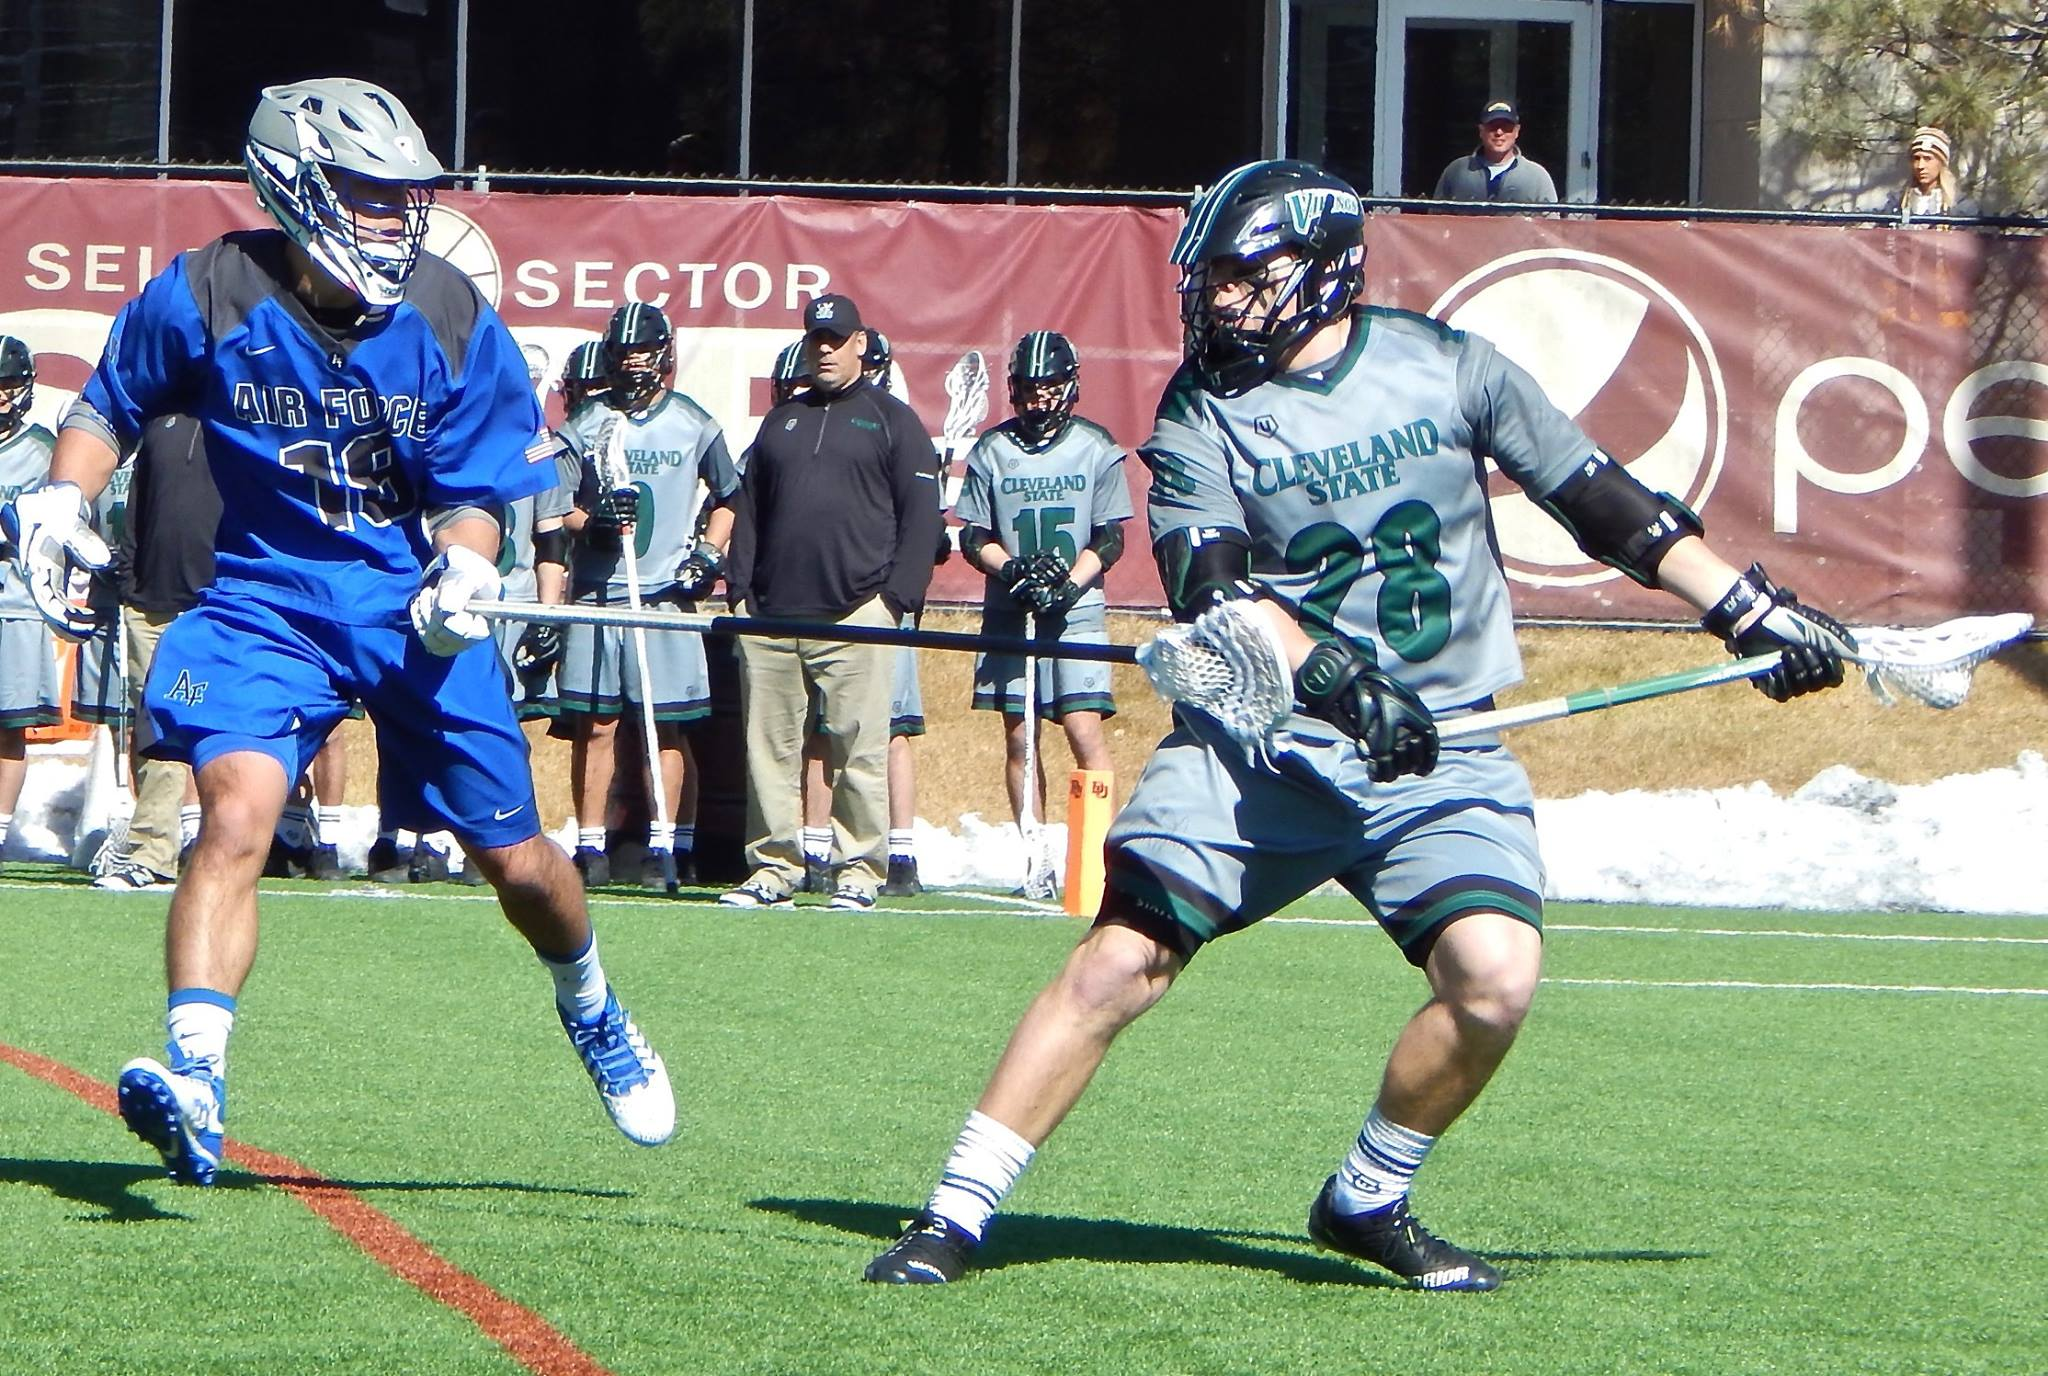 Air Force vs. Cleveland State on Sunday, February 26, 2017 at Peter Barton Lacrosse Stadium. (Photo credit: Ian Neadle)